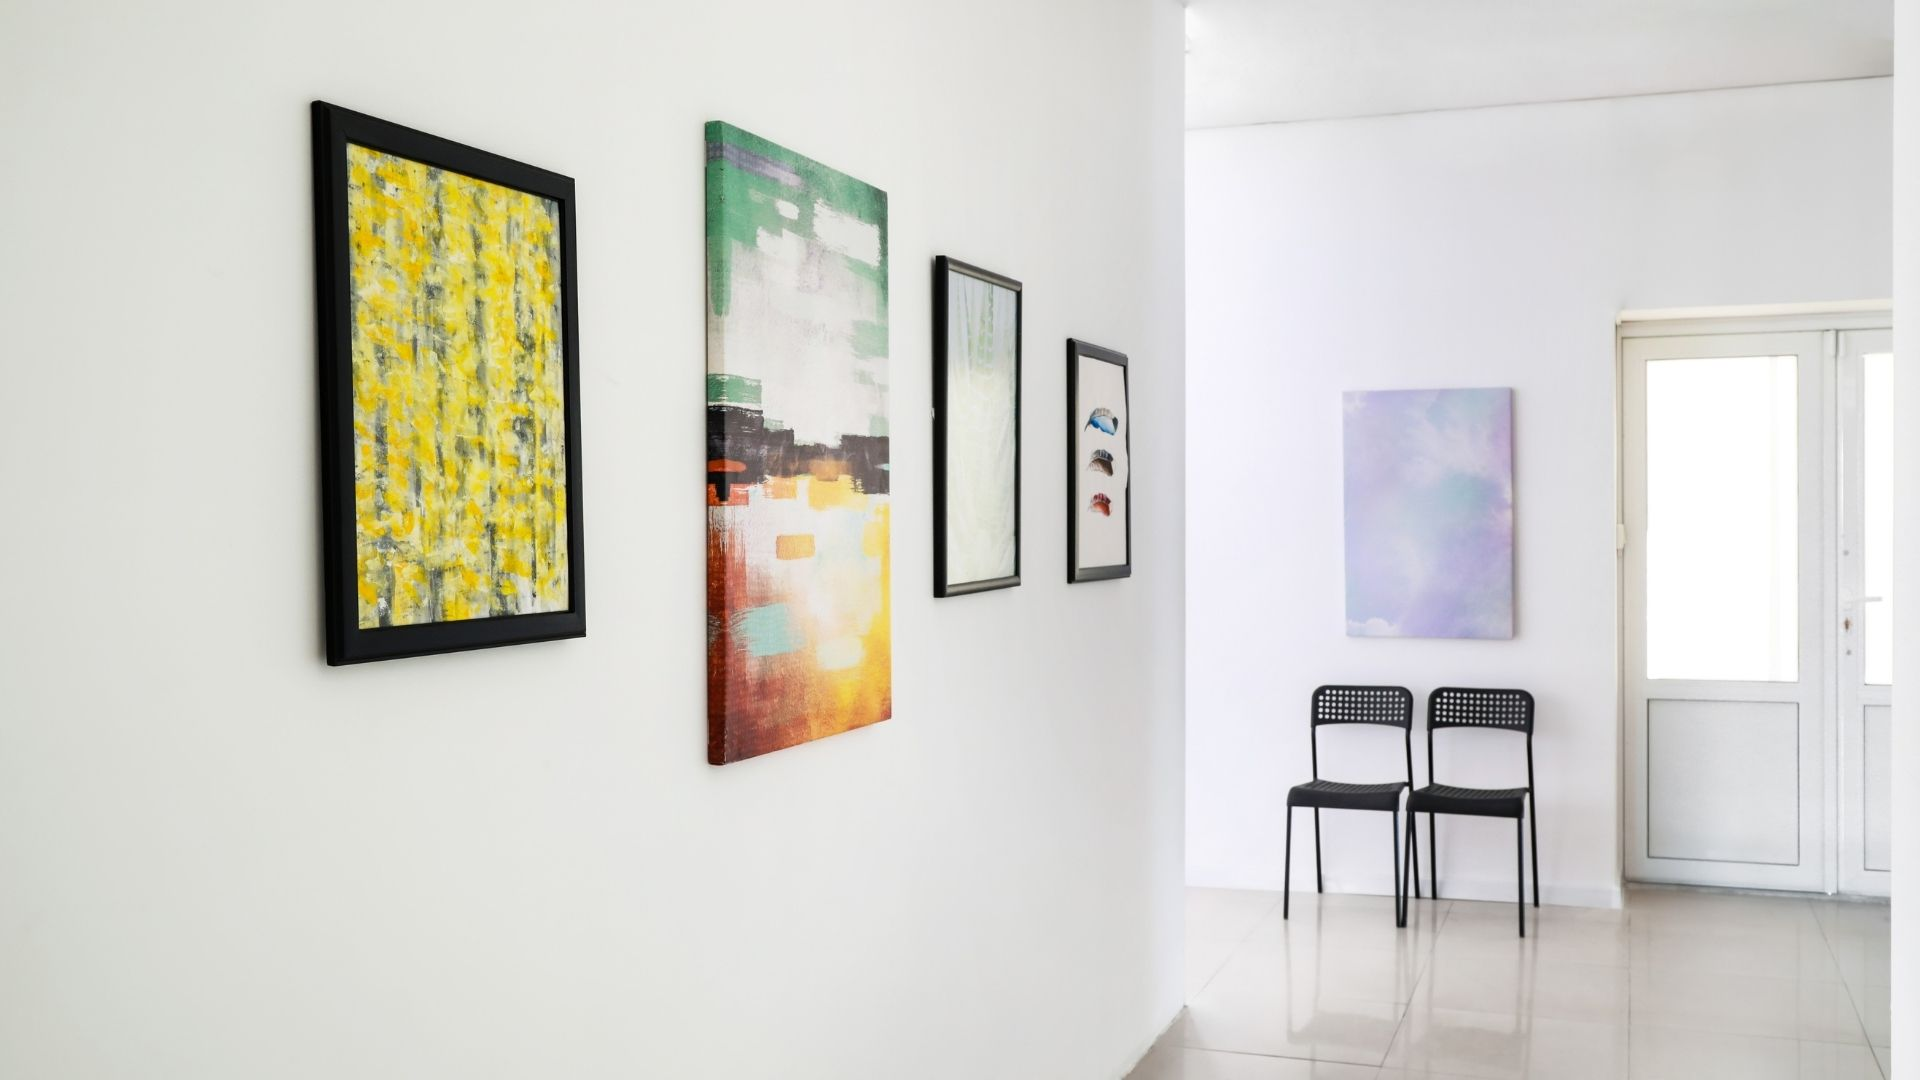 What counts the most when selecting your wall art